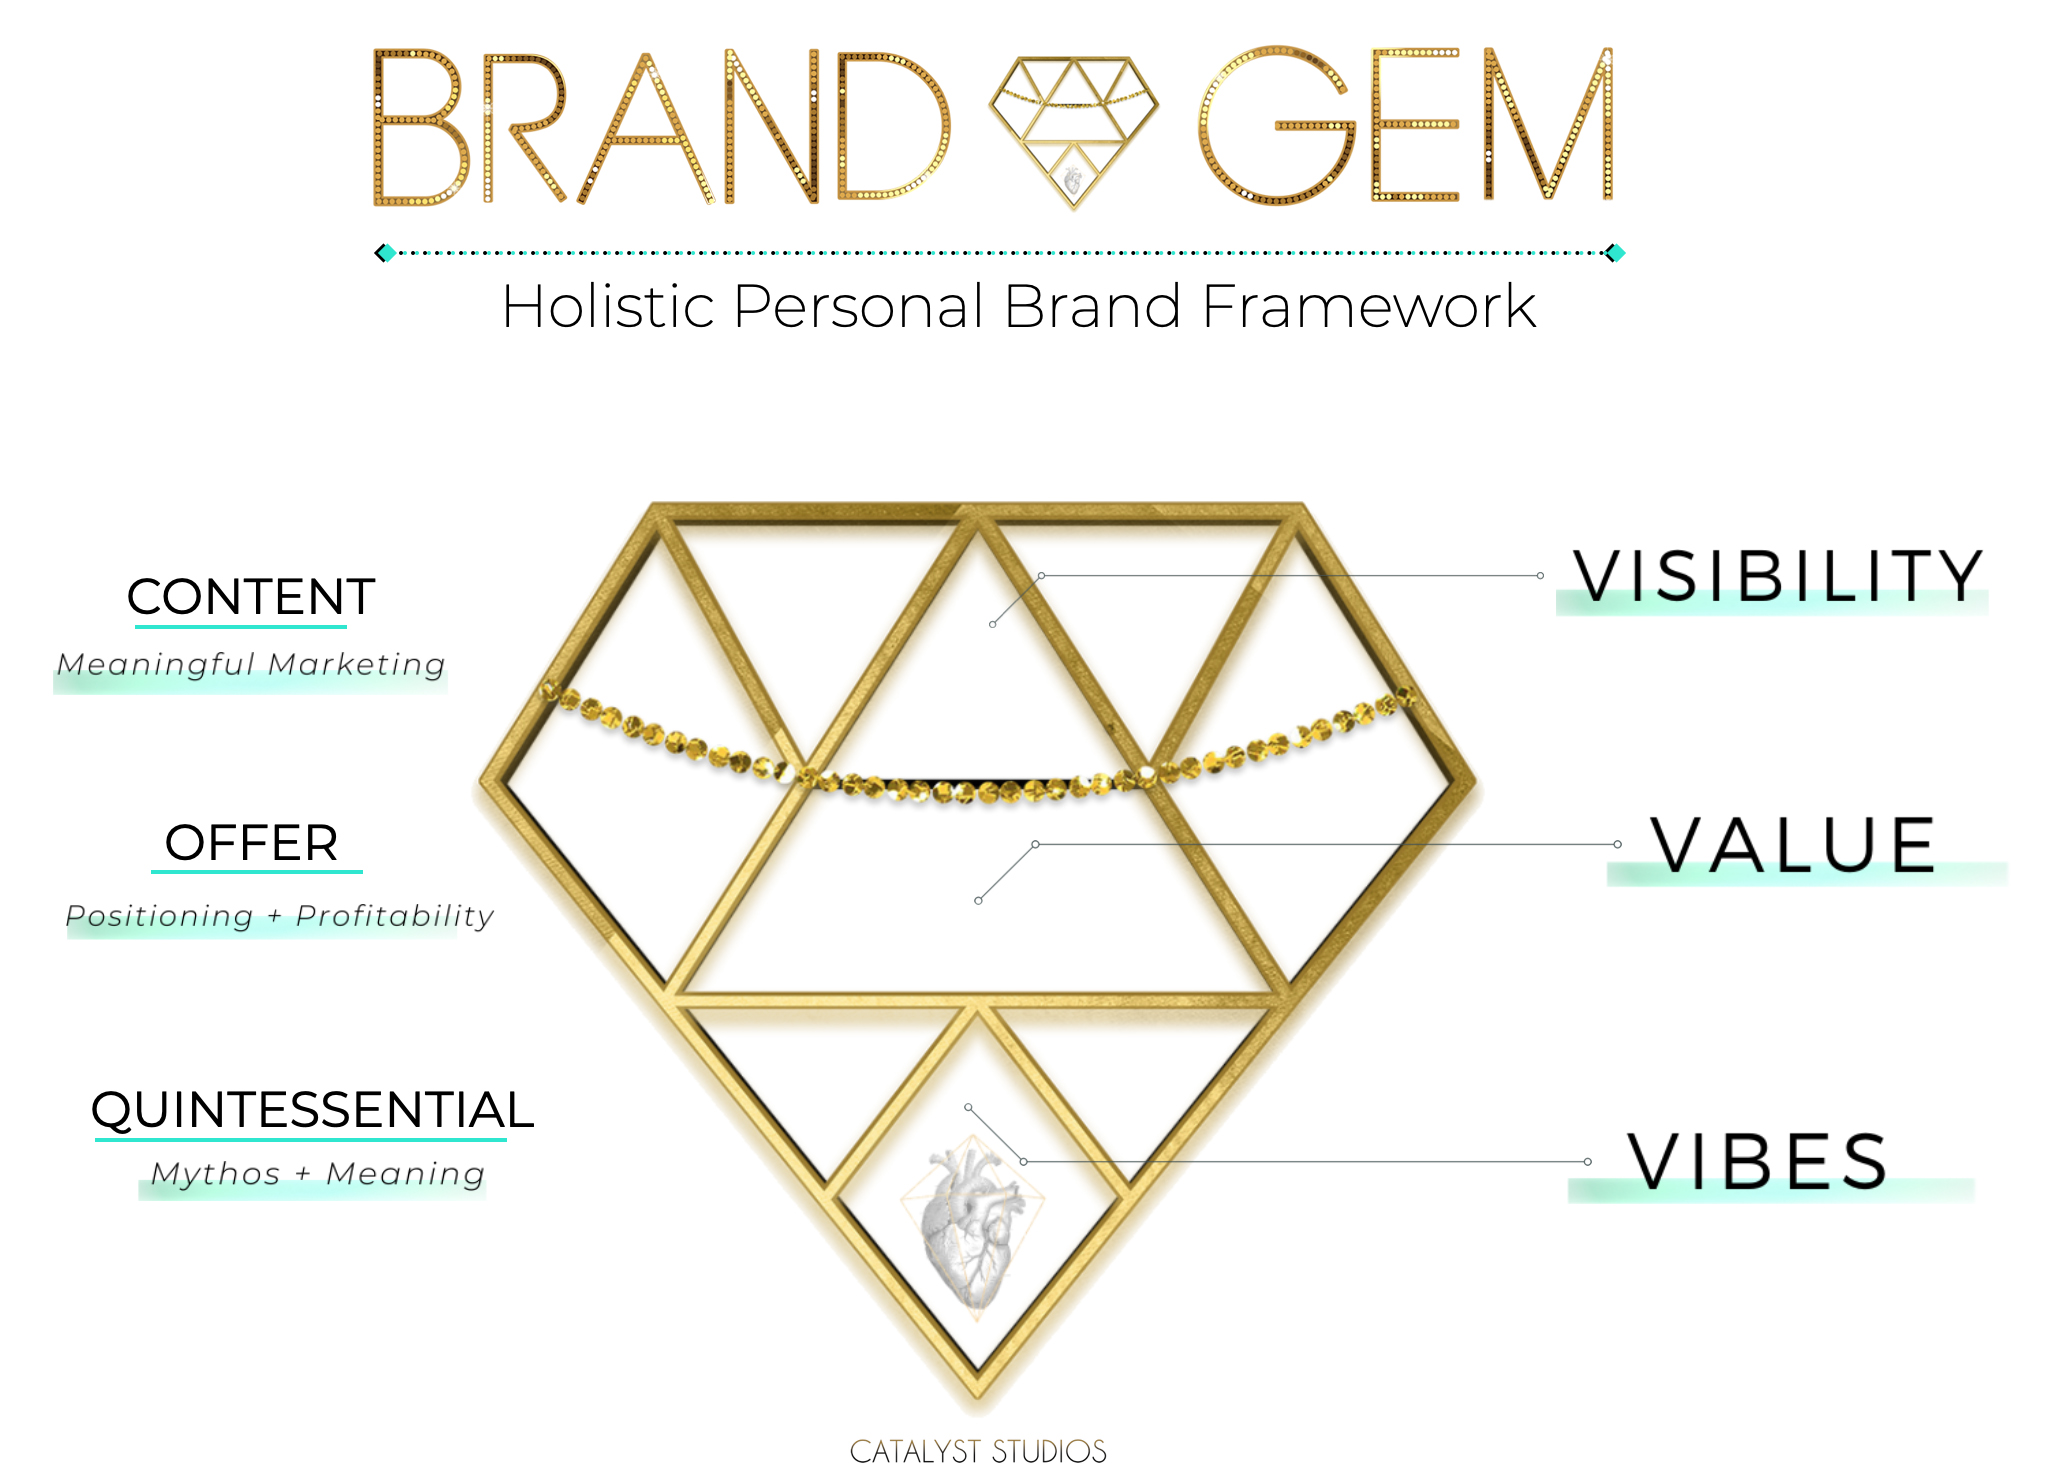 Brand Gem Holistic Personal Brand Framework created by Audette, Catalyst Studios